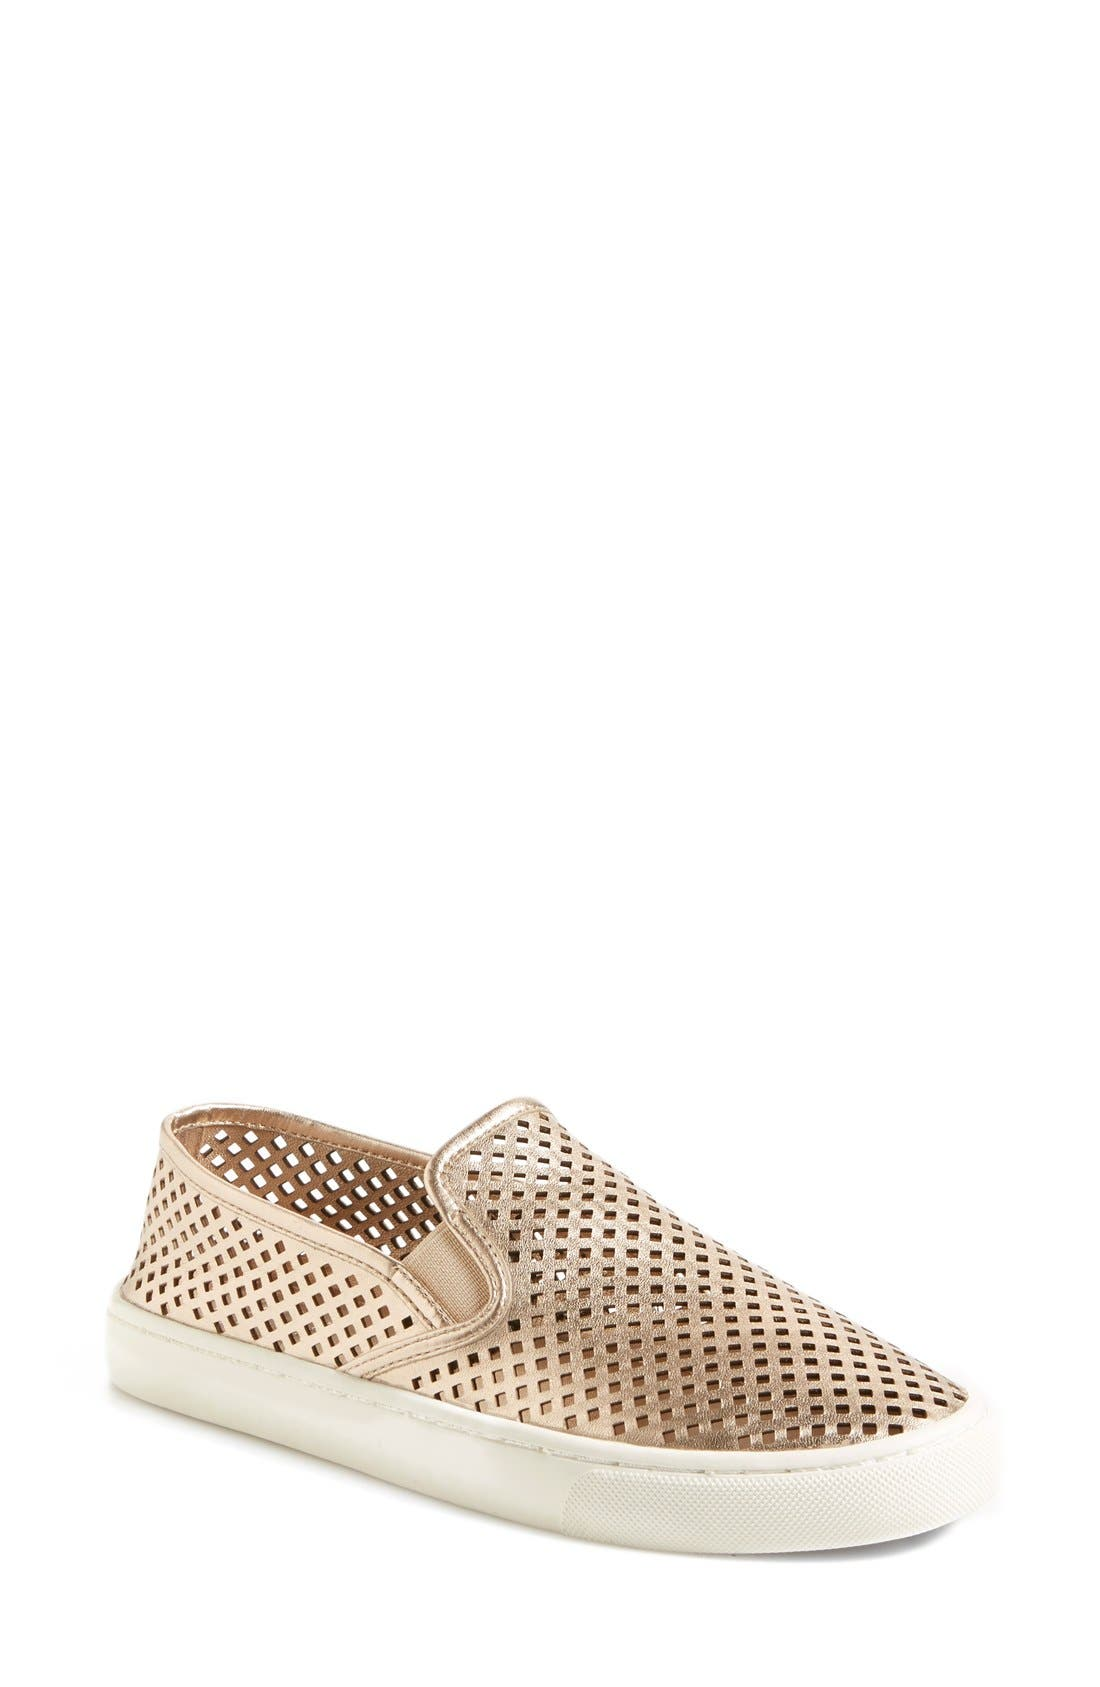 Tory Burch 'Jesse' Perforated Sneaker